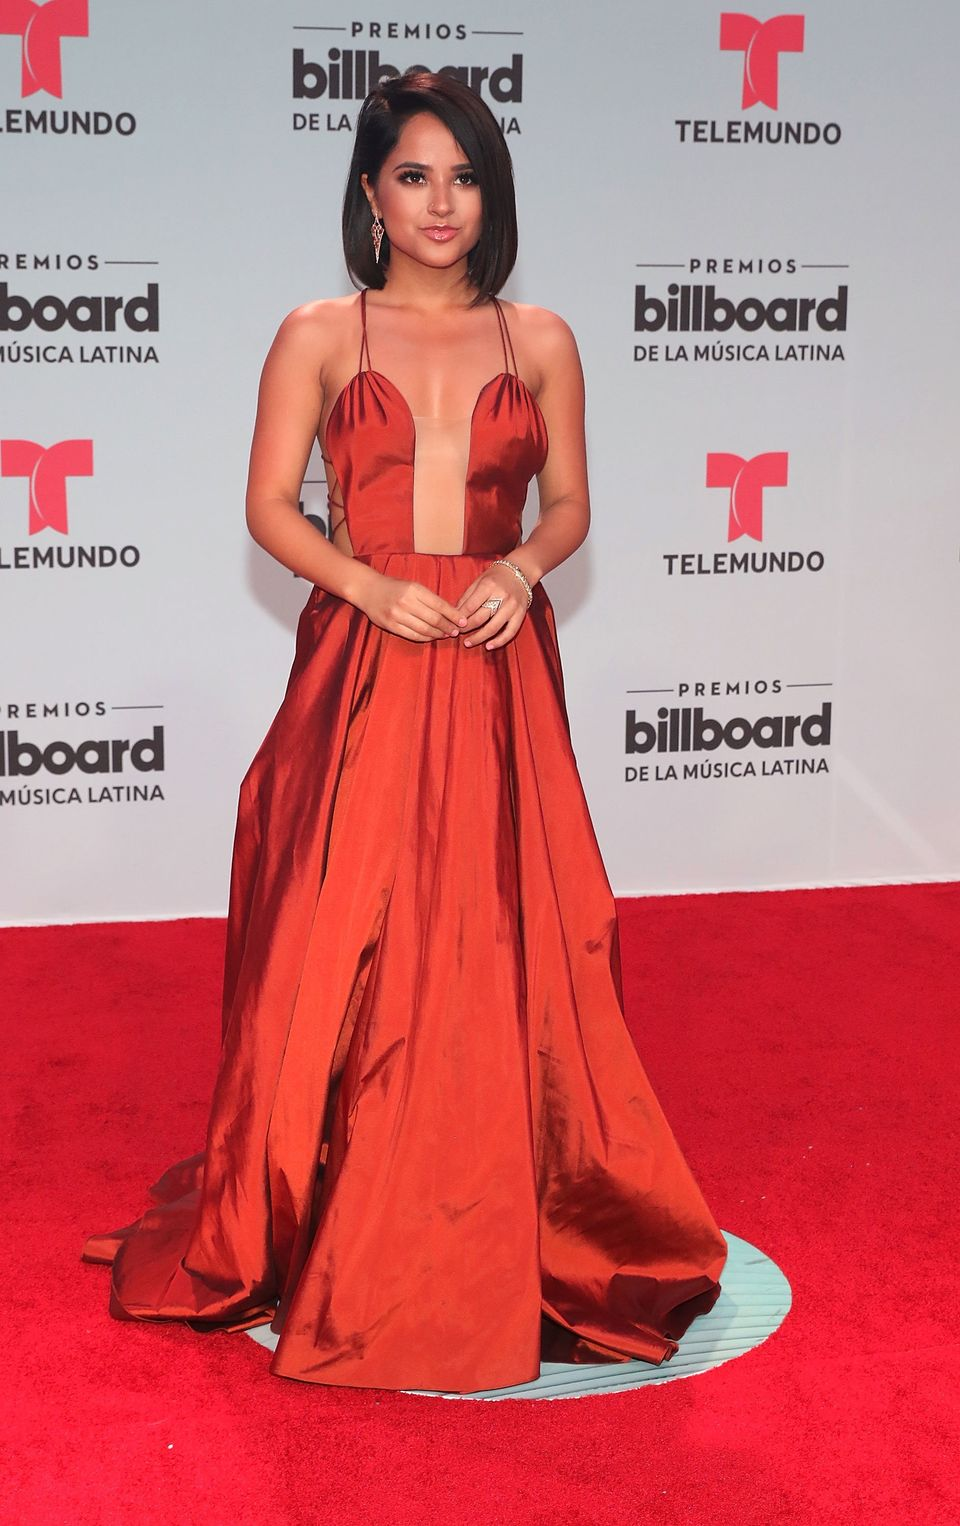 Becky G attends Billboard Latin Music Awards at Watsco Center on April 27, 2017 in Coral Gables, Florida. (Photo by Aaron Dav